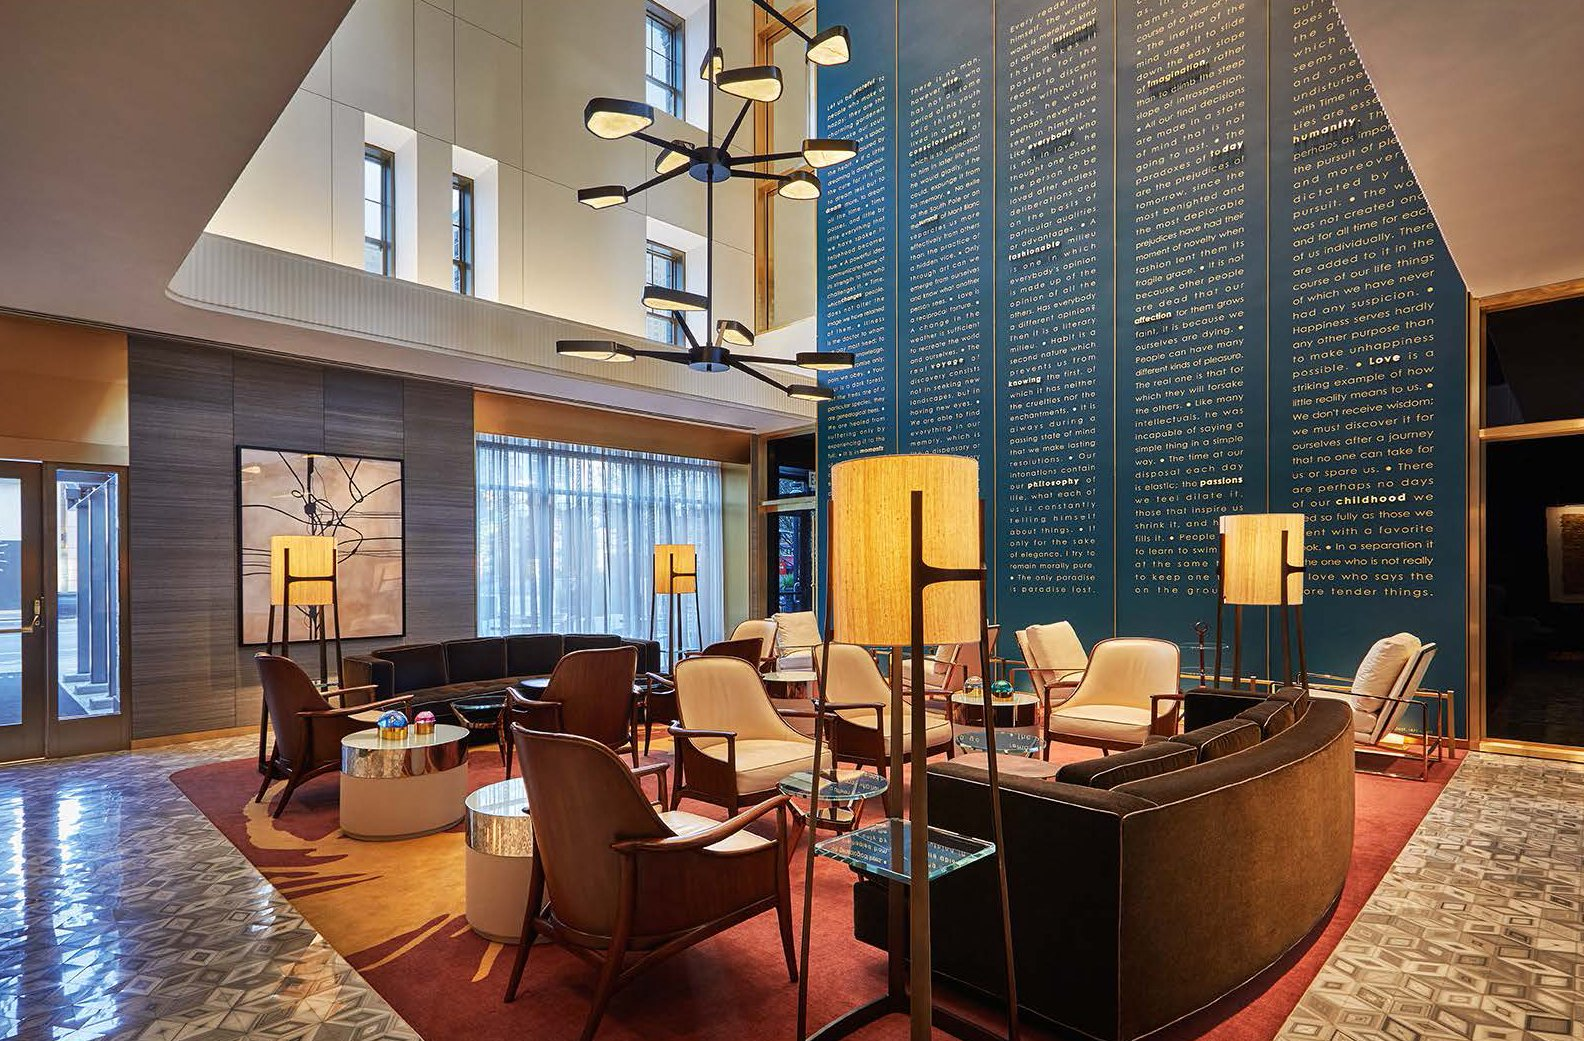 The lobby space uses white marble, brass light fixtures, and a custom 30-foot art wall tableau.